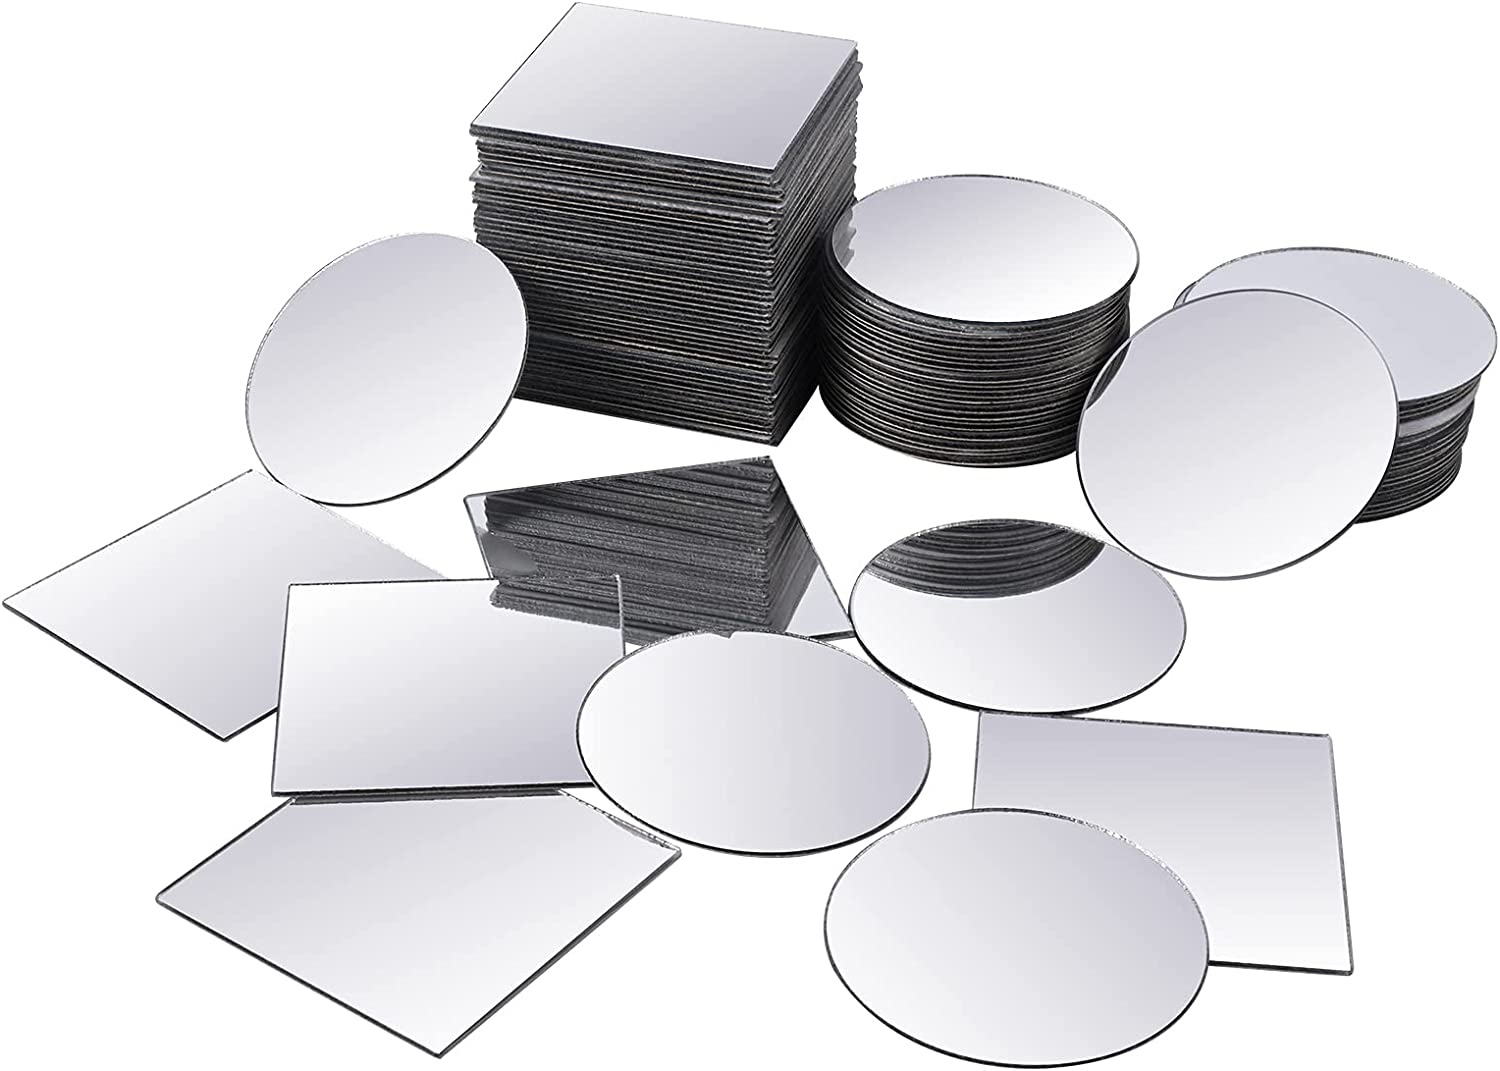 PAFUWEI 100 Pieces overseas of Round Square Mini Pcs Mirror 50 Siz Selling and selling Tiles